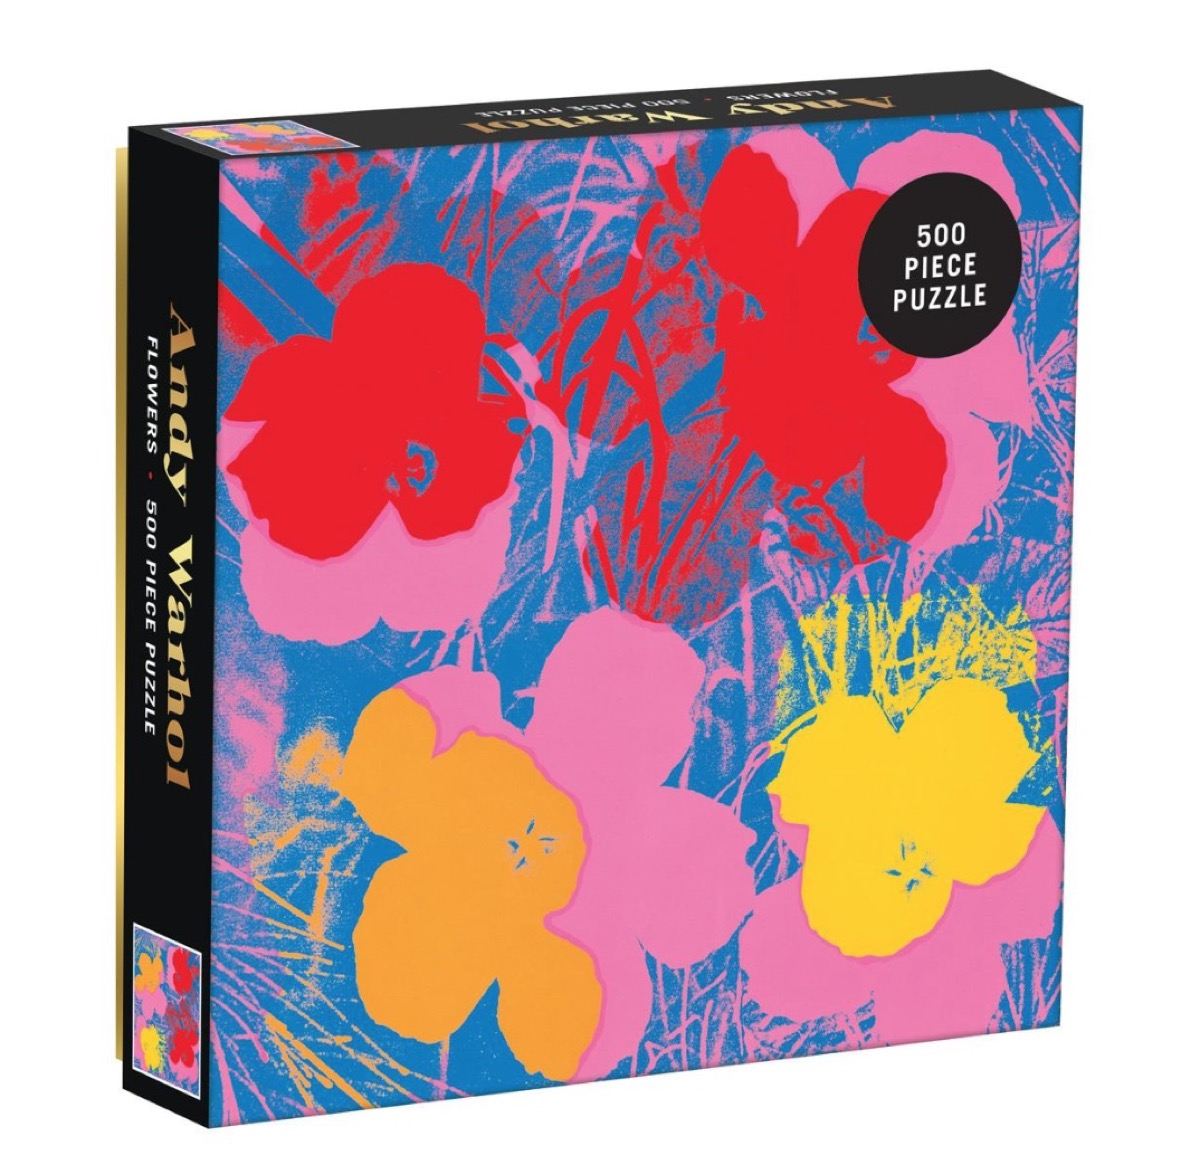 andy warhol flower puzzle box